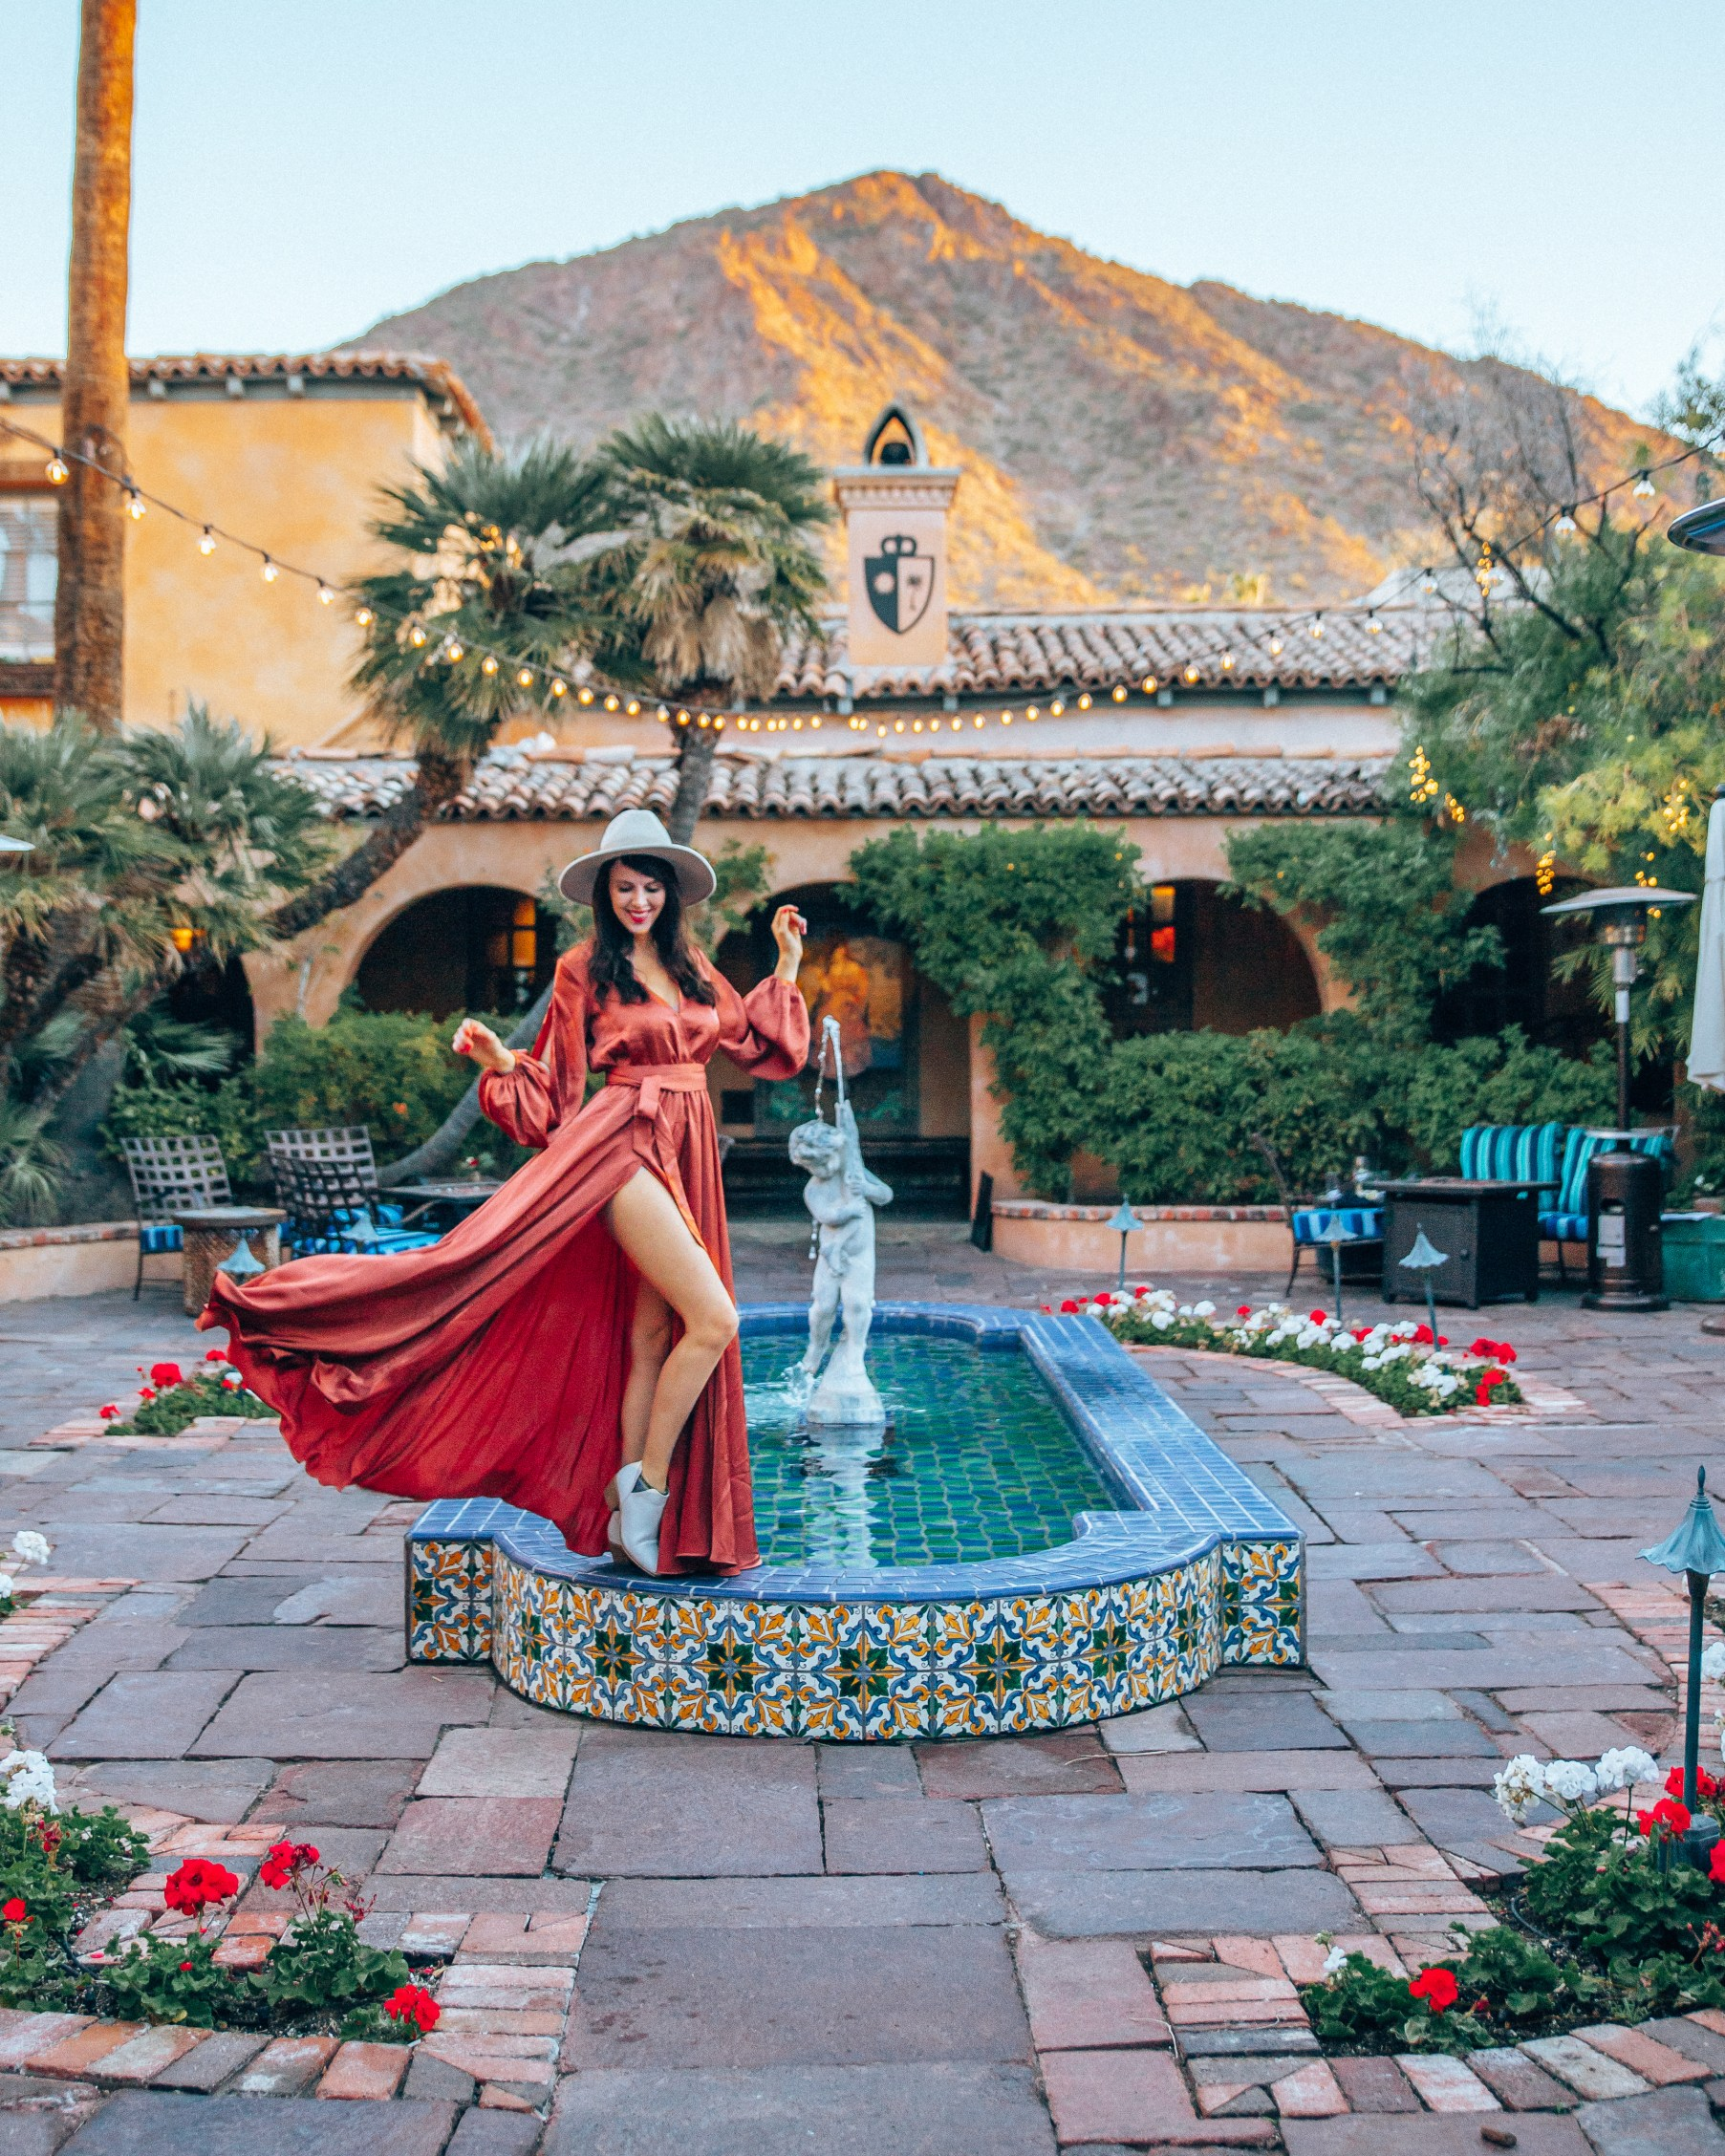 Woman flicking a dress at the main courtyard with a beautiful fountain and the Camelback mountain view